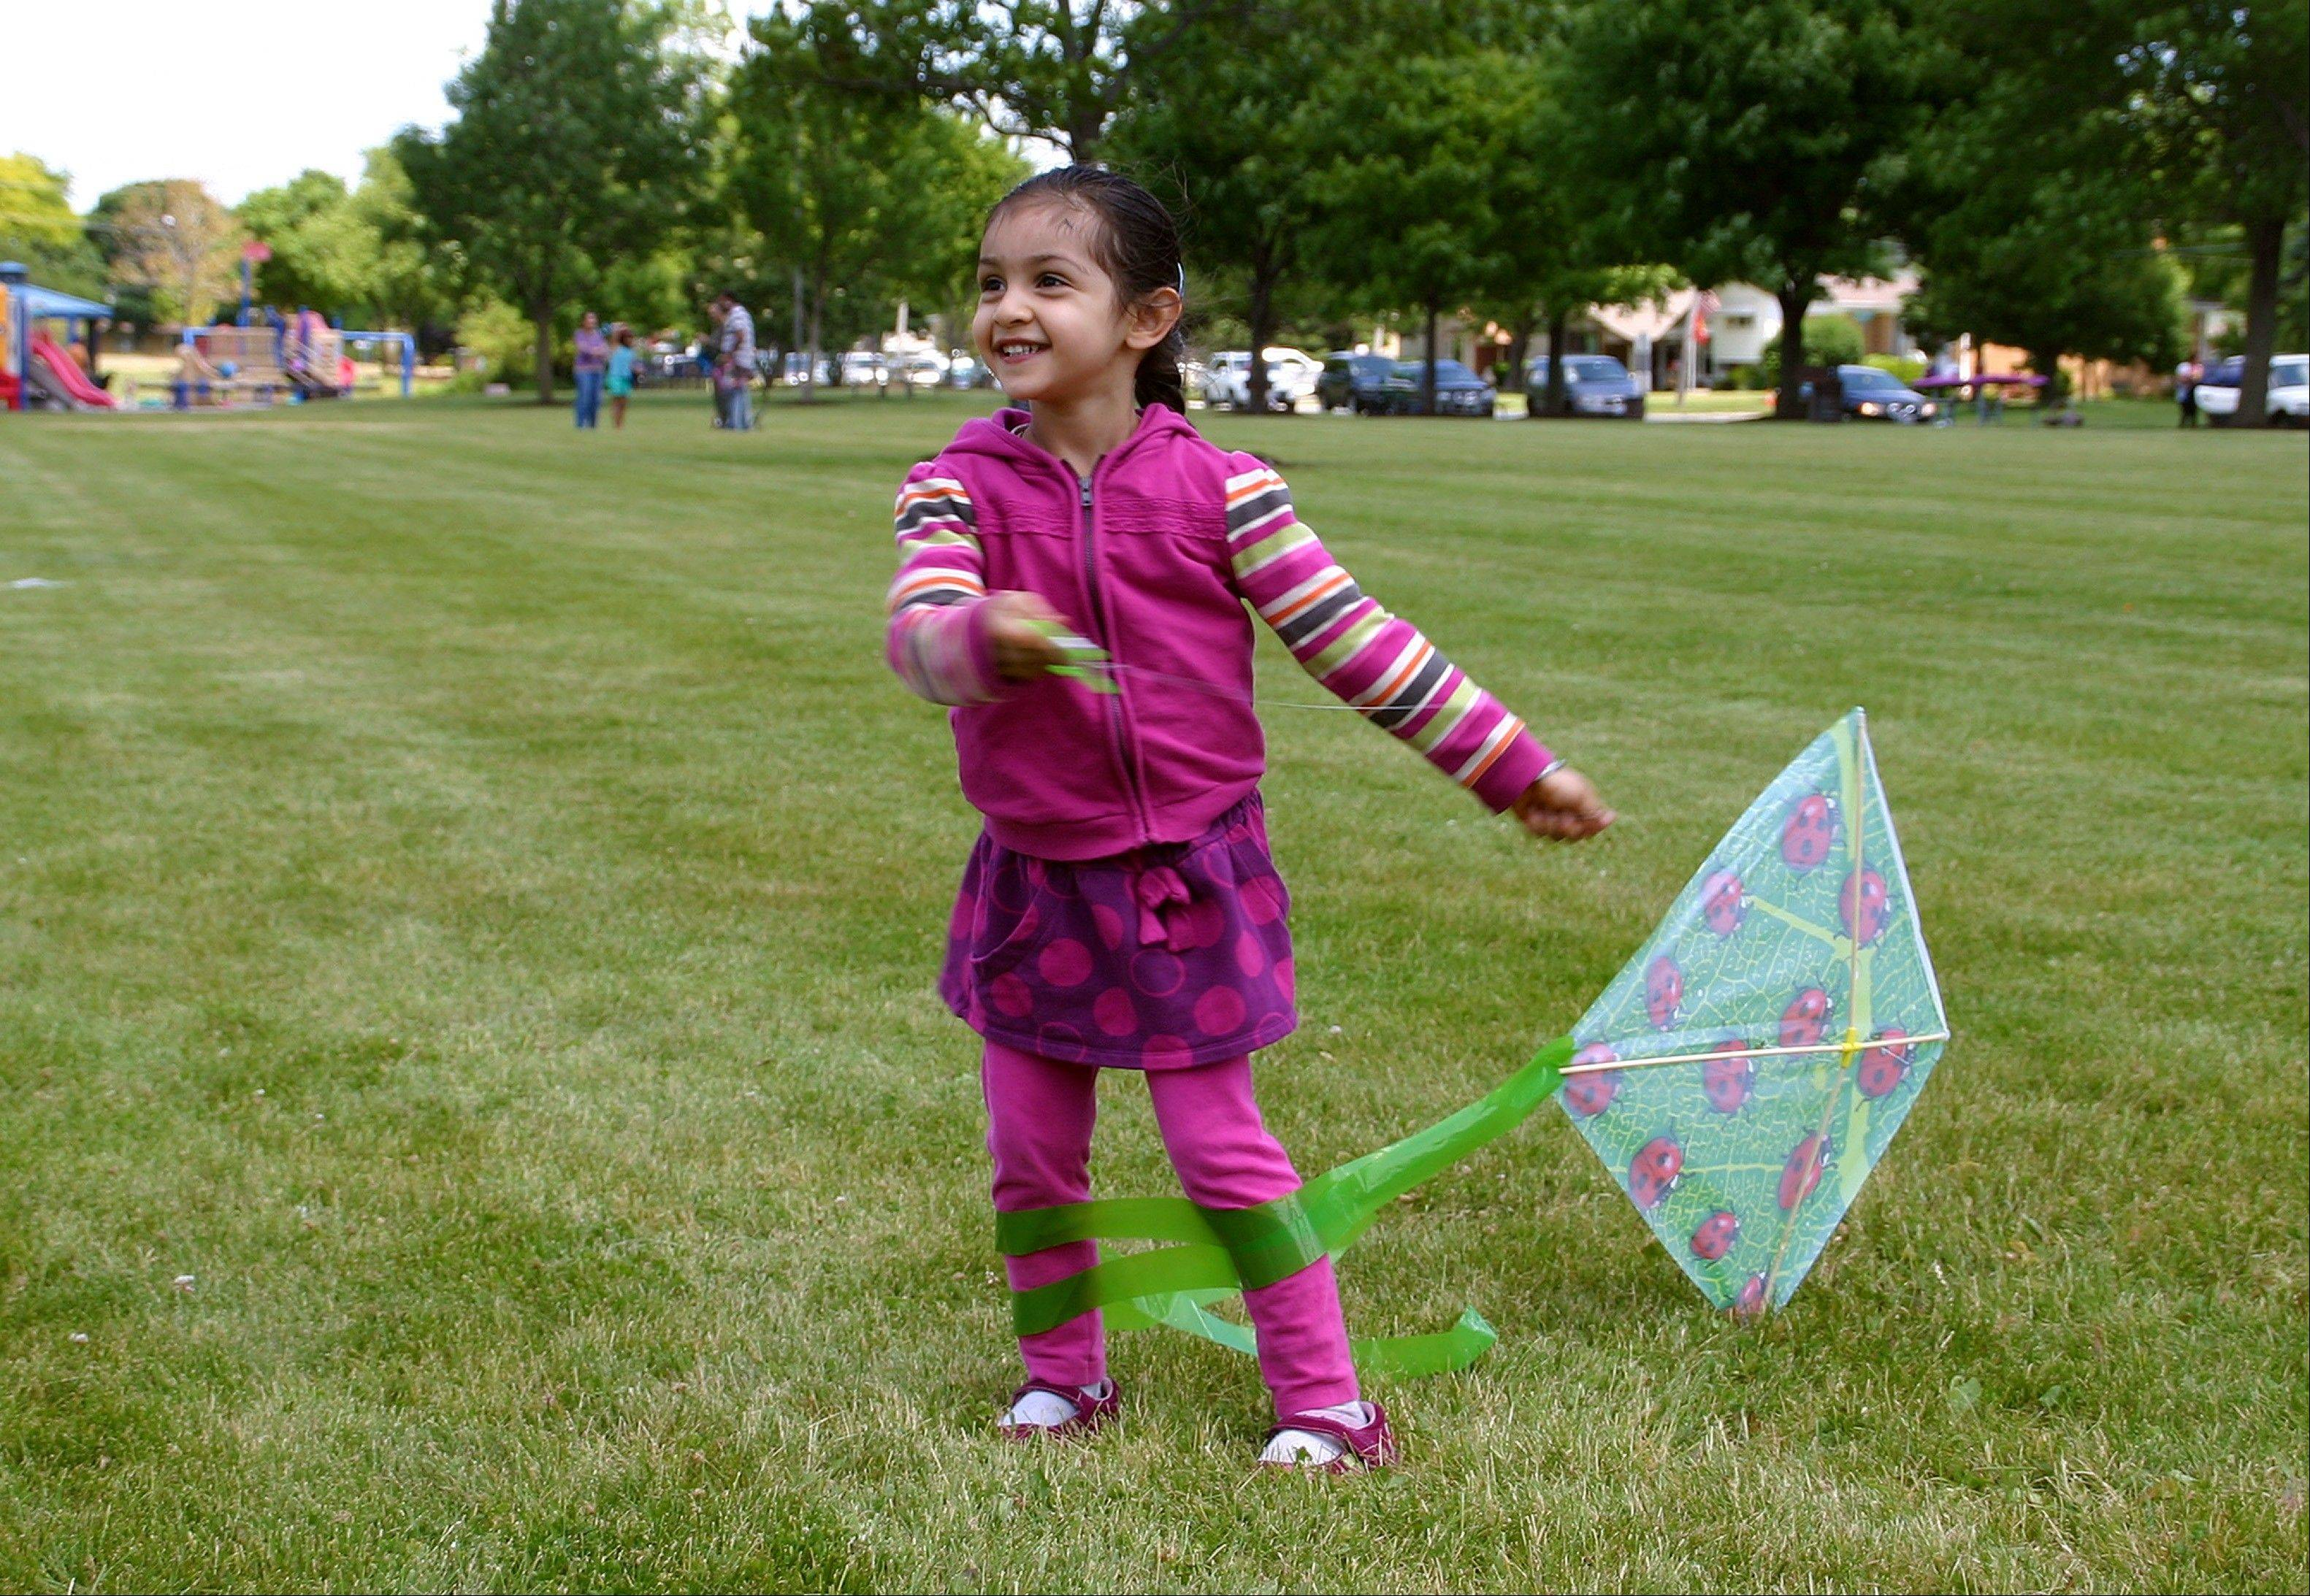 Jasmine Kaur, 3, gets ready to fly her ladybug kite at the Des Plaines Optimist's Club free Kite Fly on June 2.